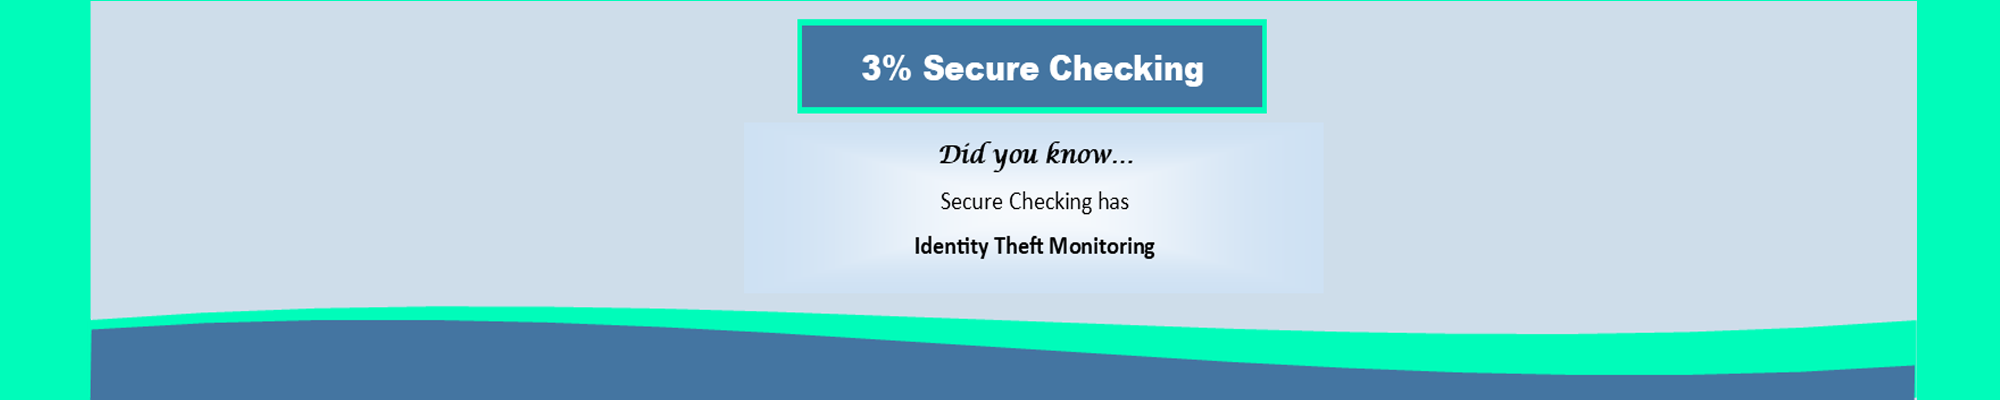 secure checking benefit 1